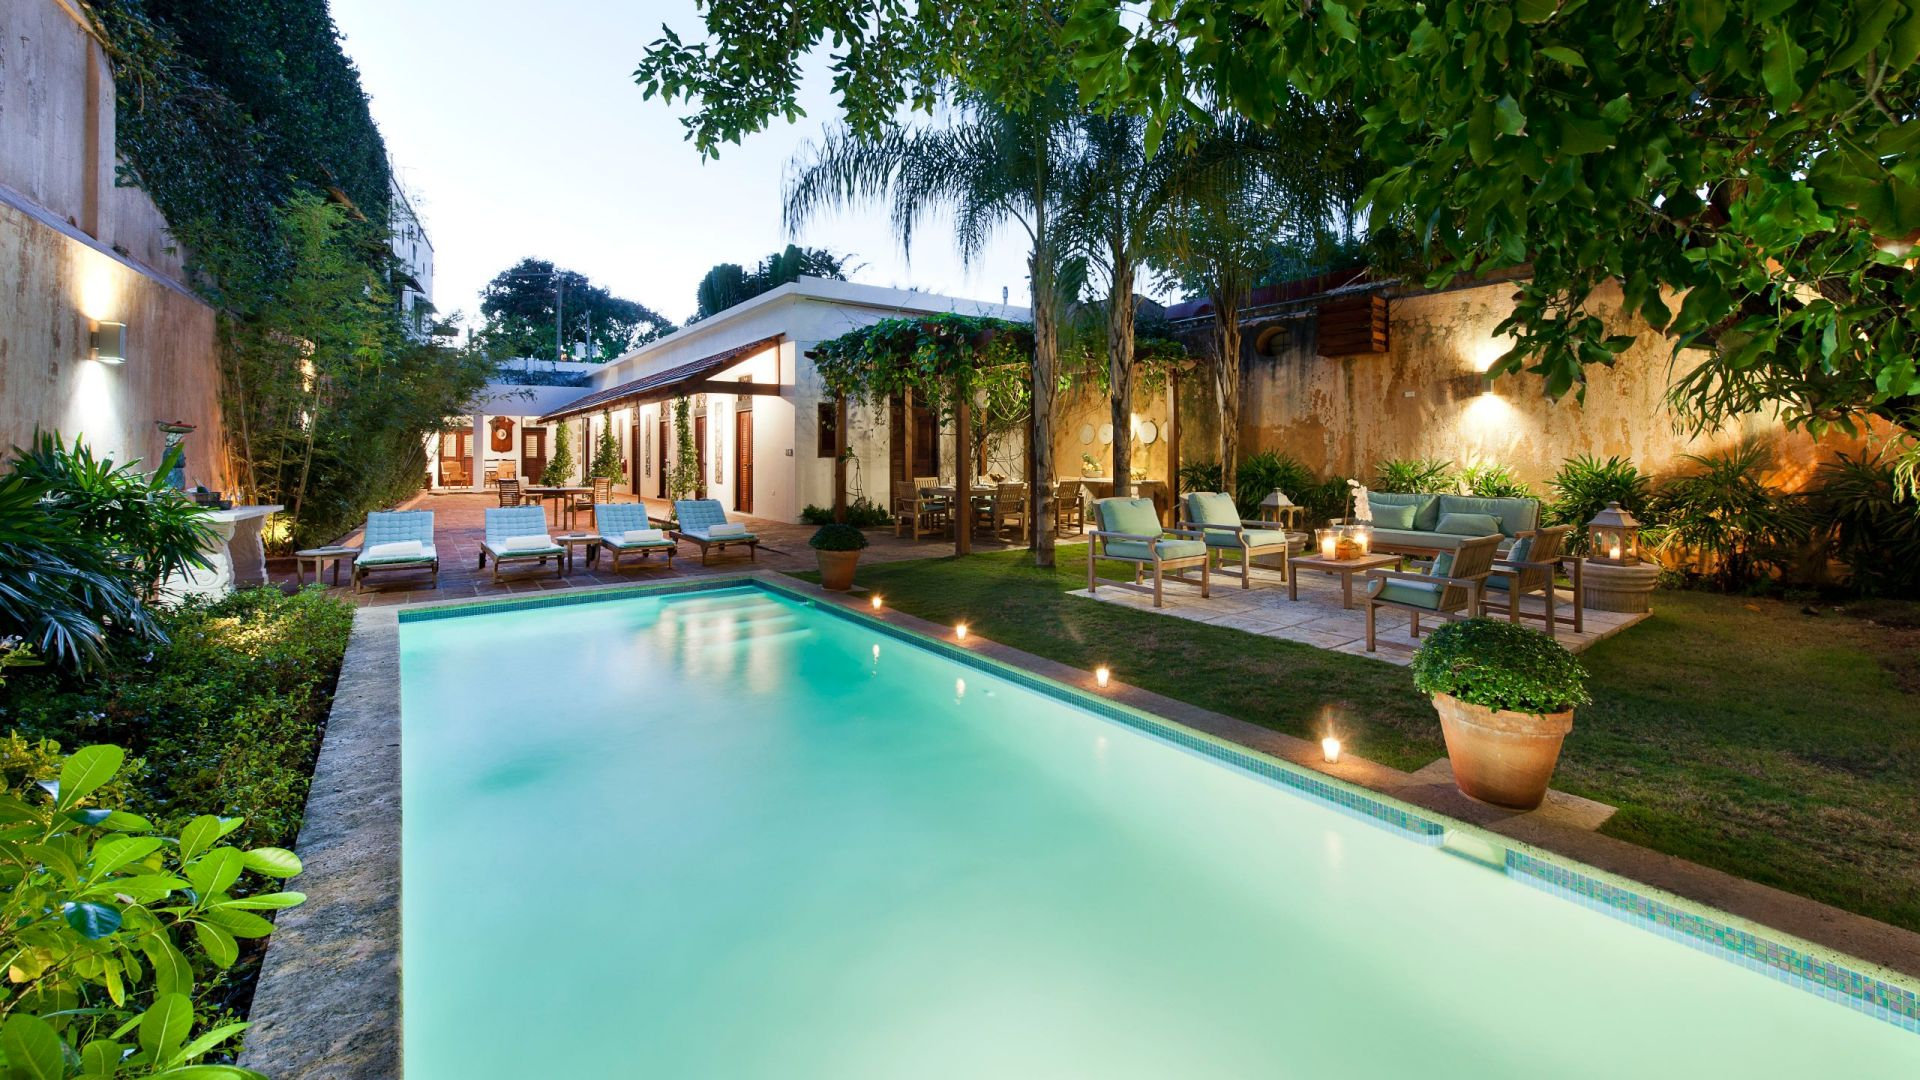 Three colonial villas with beautiful period décor